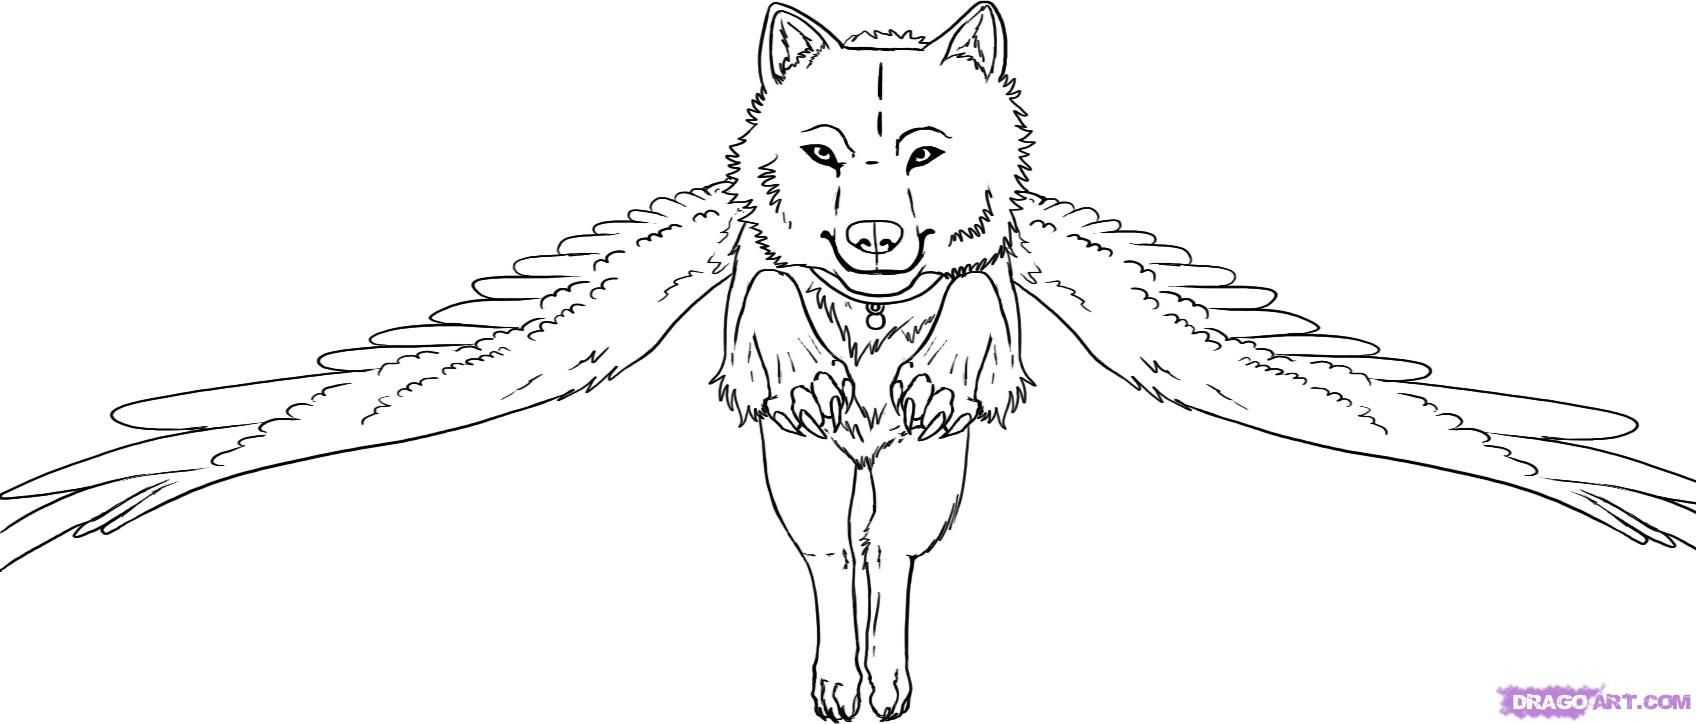 Mystical/Fantasy Leaping Wolf Drawing with Wings Outline